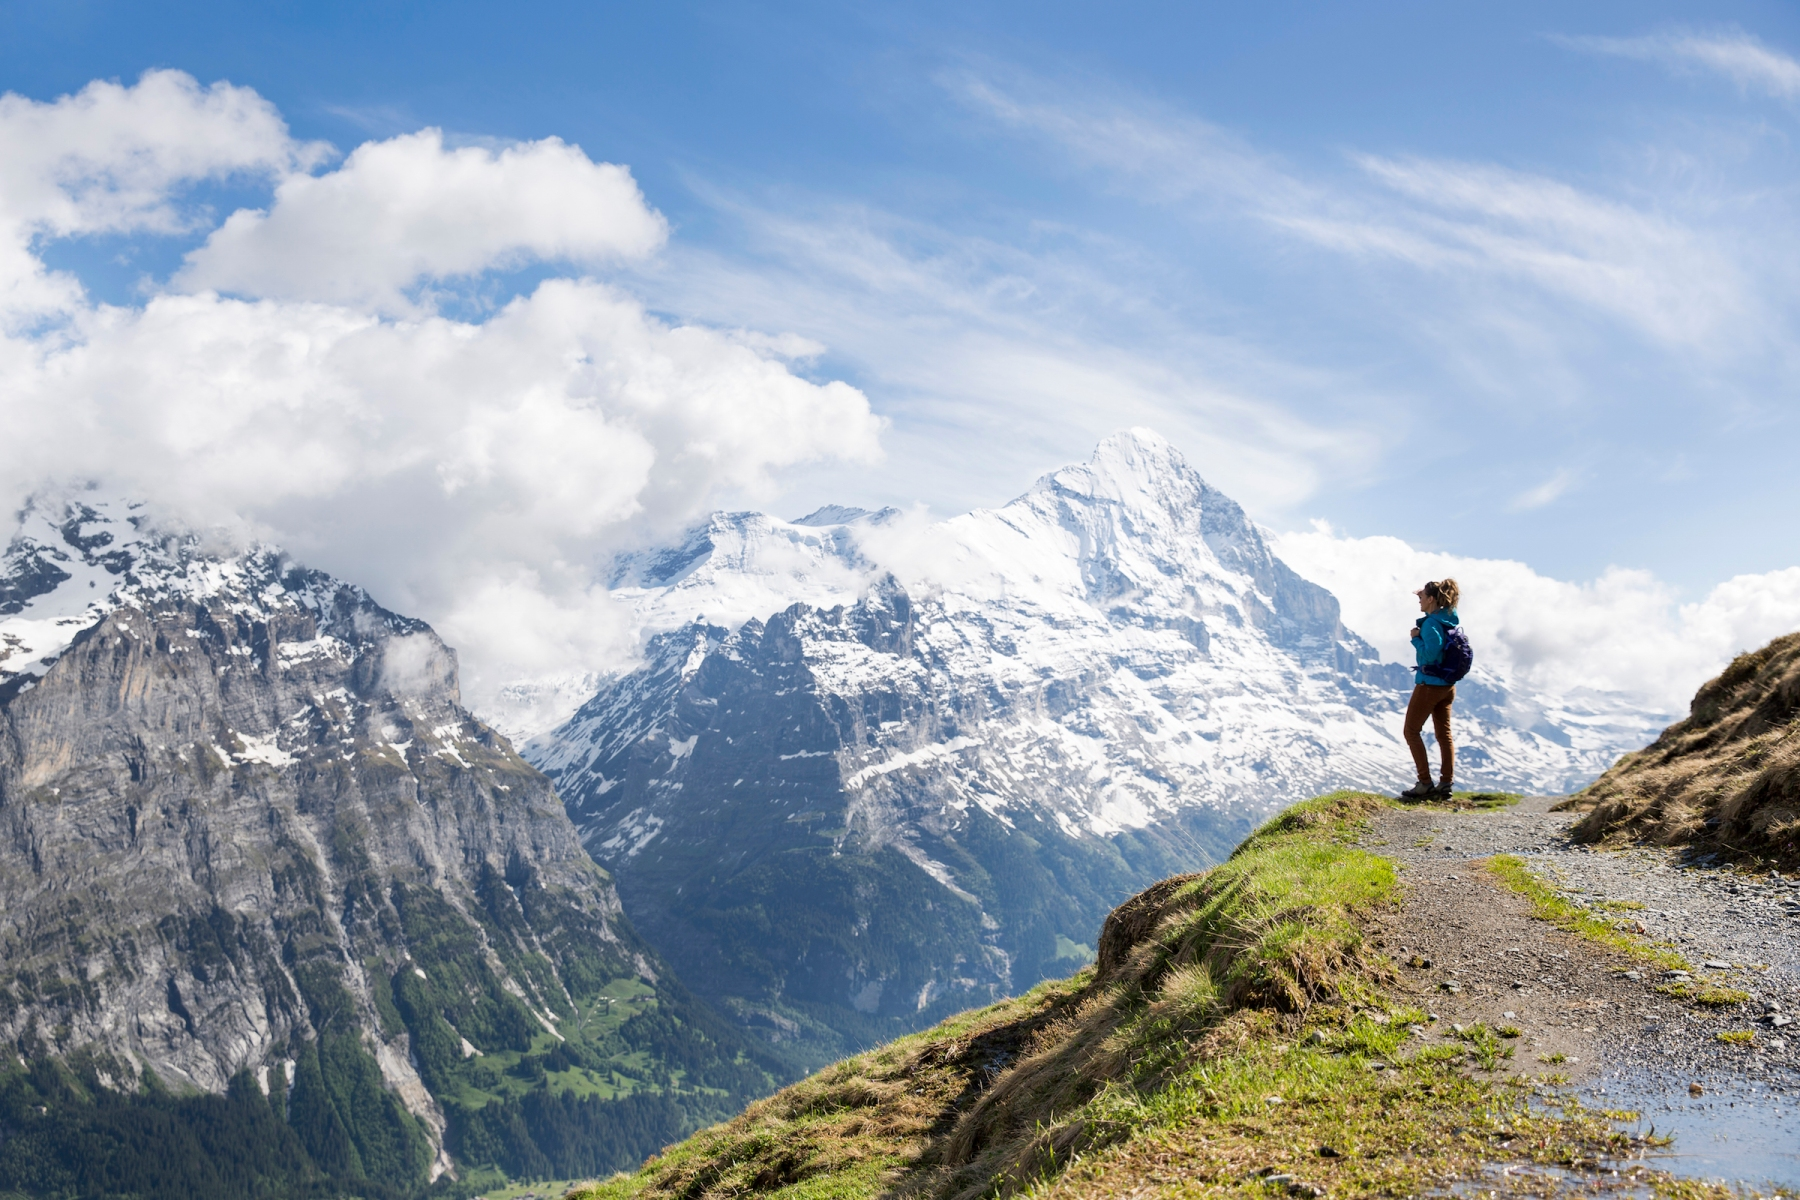 A Guide to Tightroping across the Swiss Alps